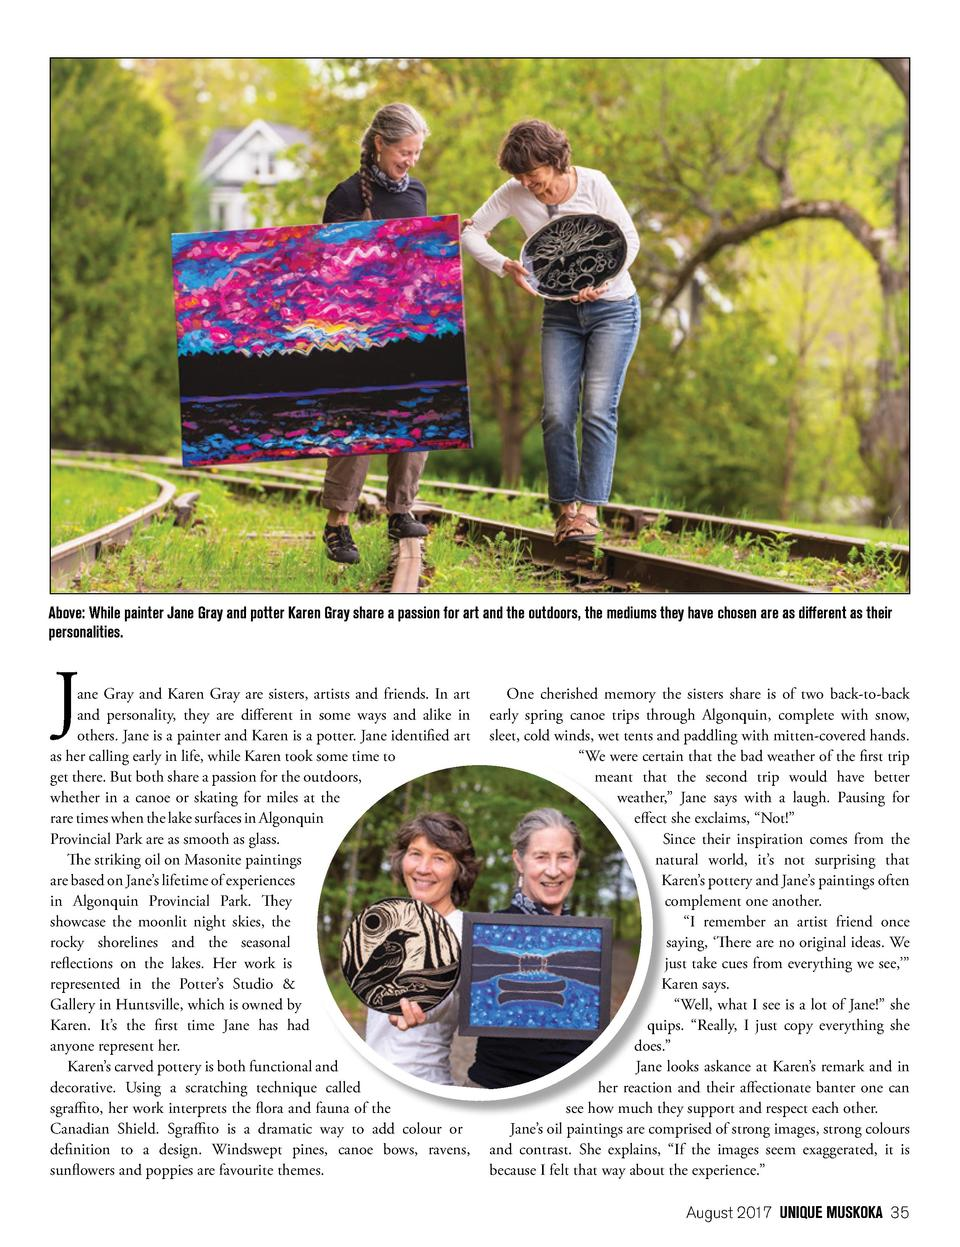 Above  While painter Jane Gray and potter Karen Gray share a passion for art and the outdoors, the mediums they have chose...